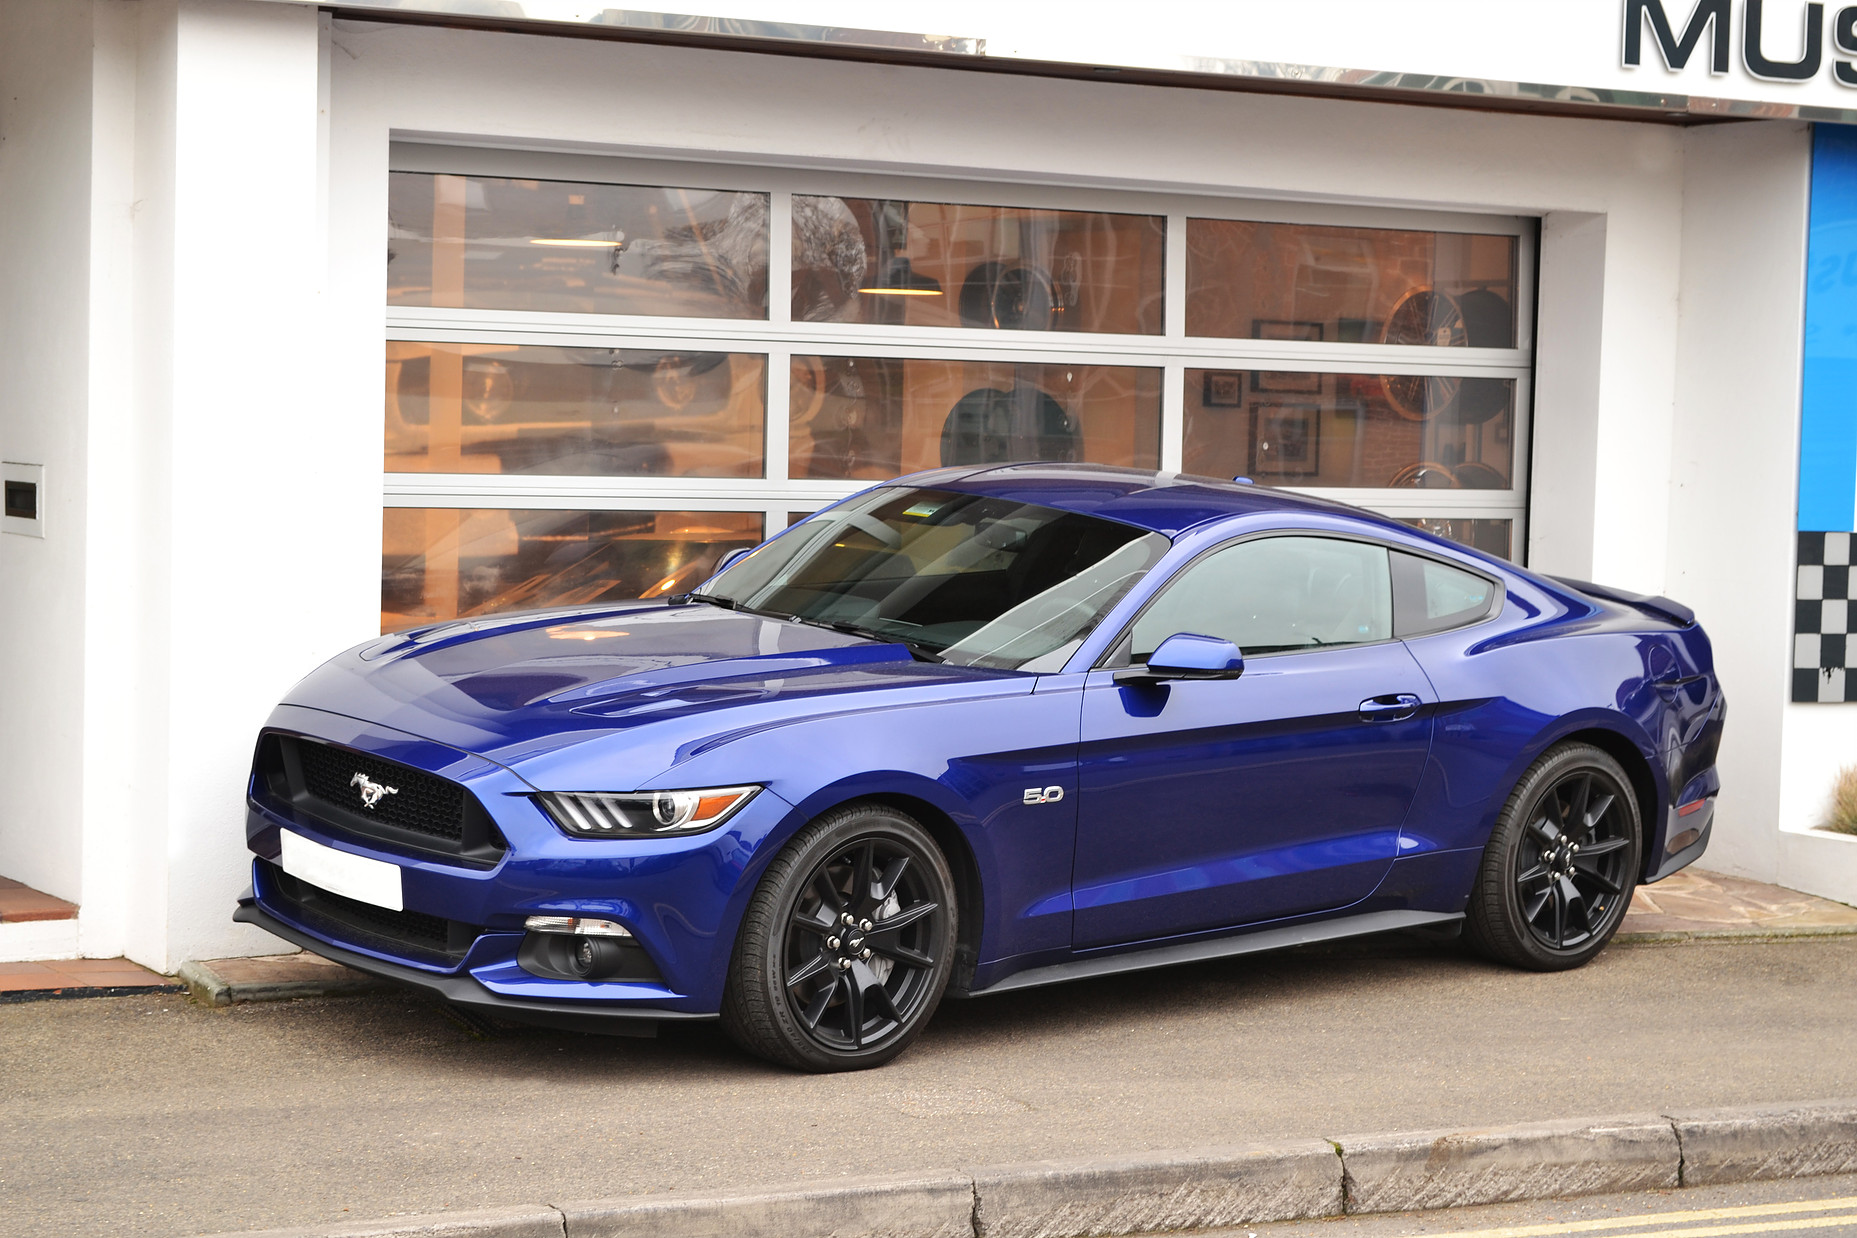 2015 ford mustang 5 0 gt auto for sale uk. Black Bedroom Furniture Sets. Home Design Ideas